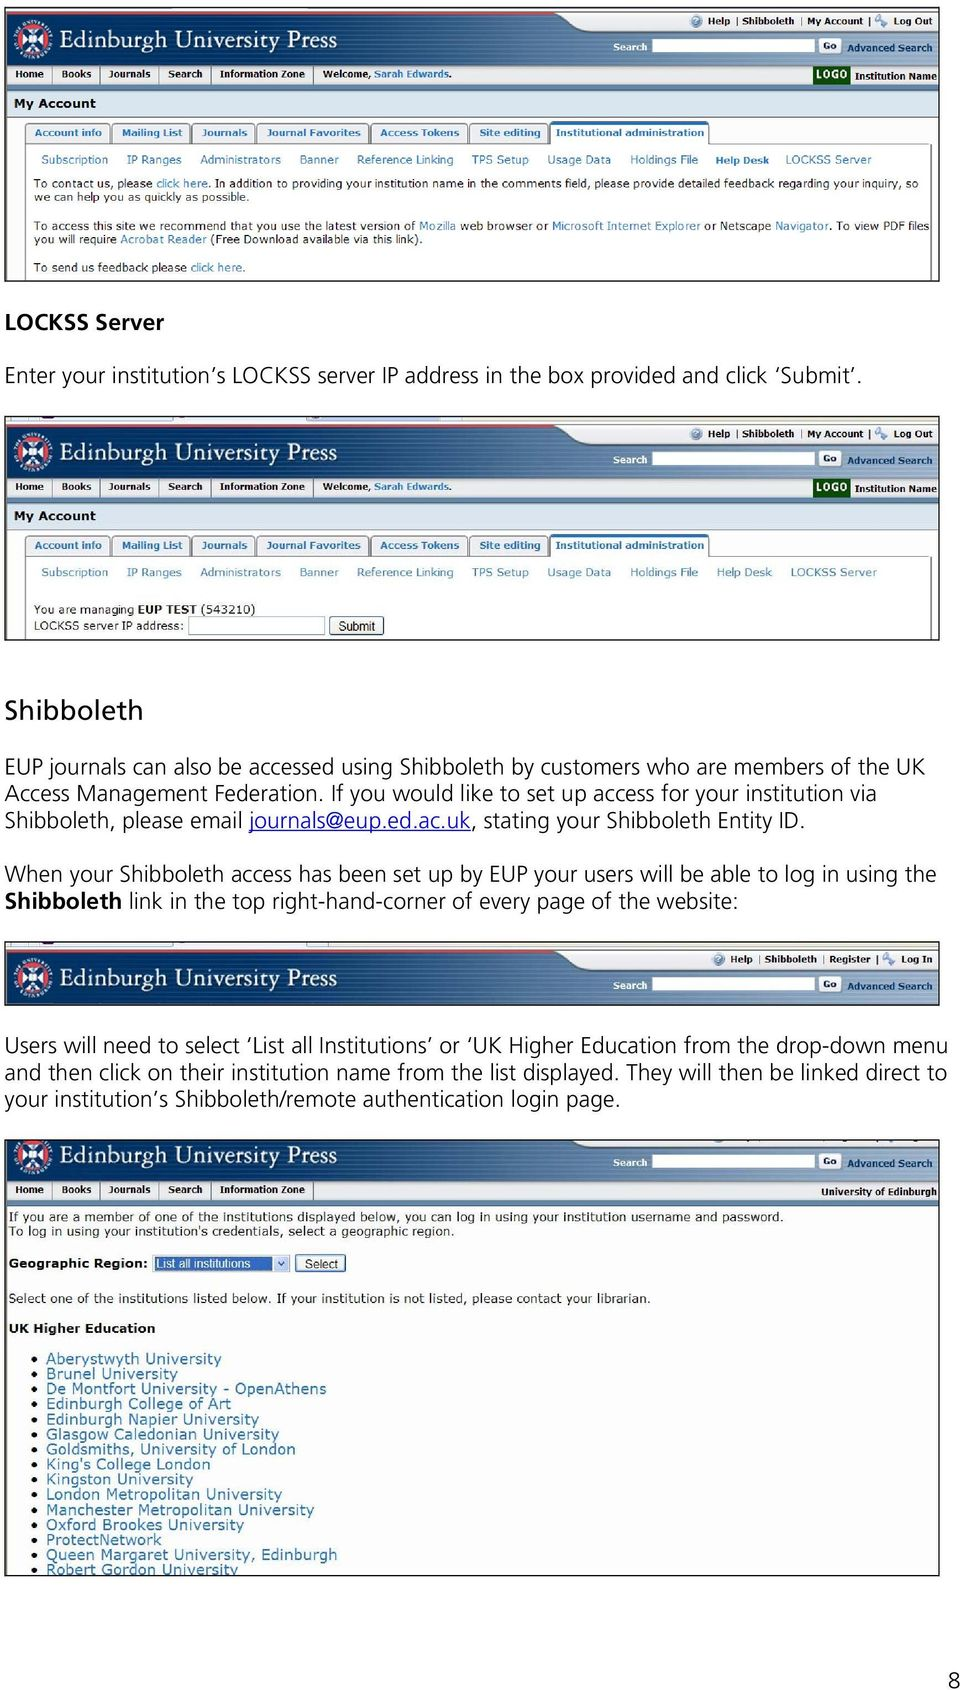 If you would like to set up access for your institution via Shibboleth, please email journals@eup.ed.ac.uk, stating your Shibboleth Entity ID.